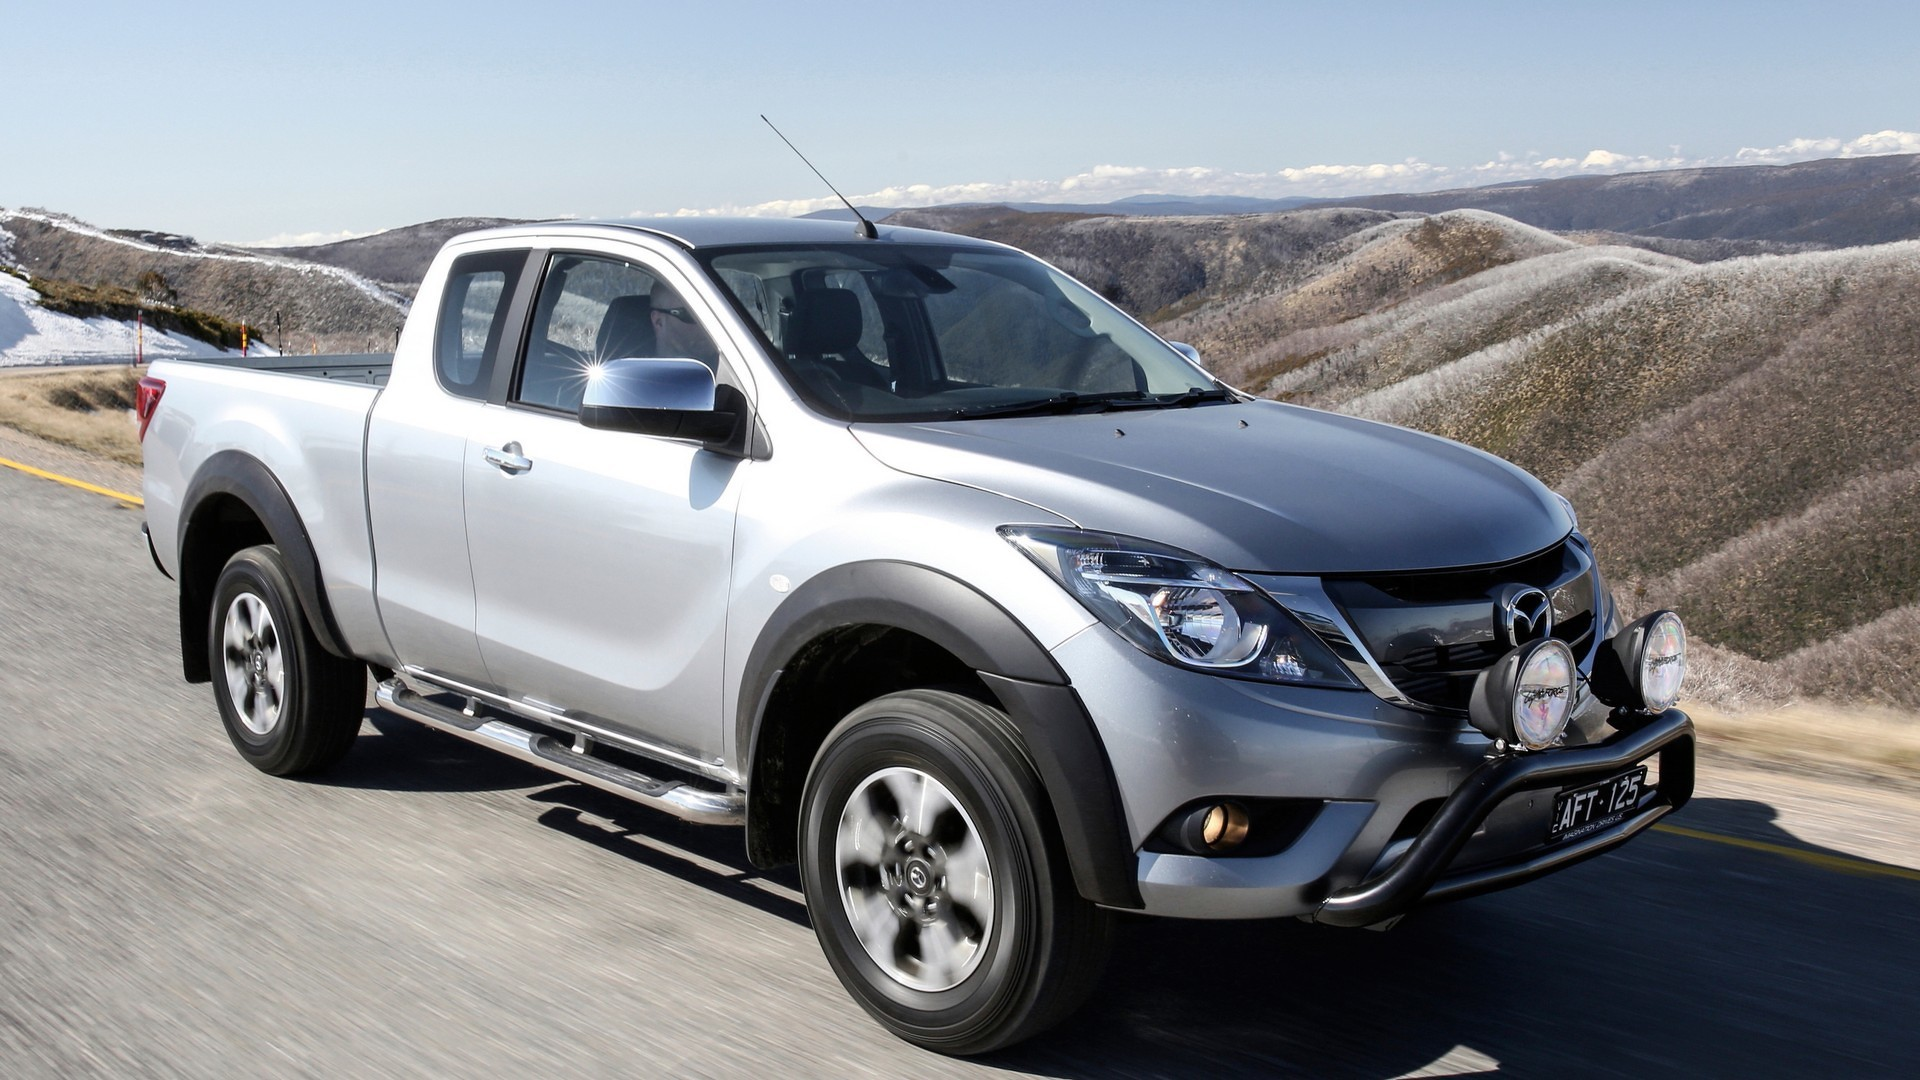 Next Gen Mazda Pickup Will Feature Beautiful But Manly Design